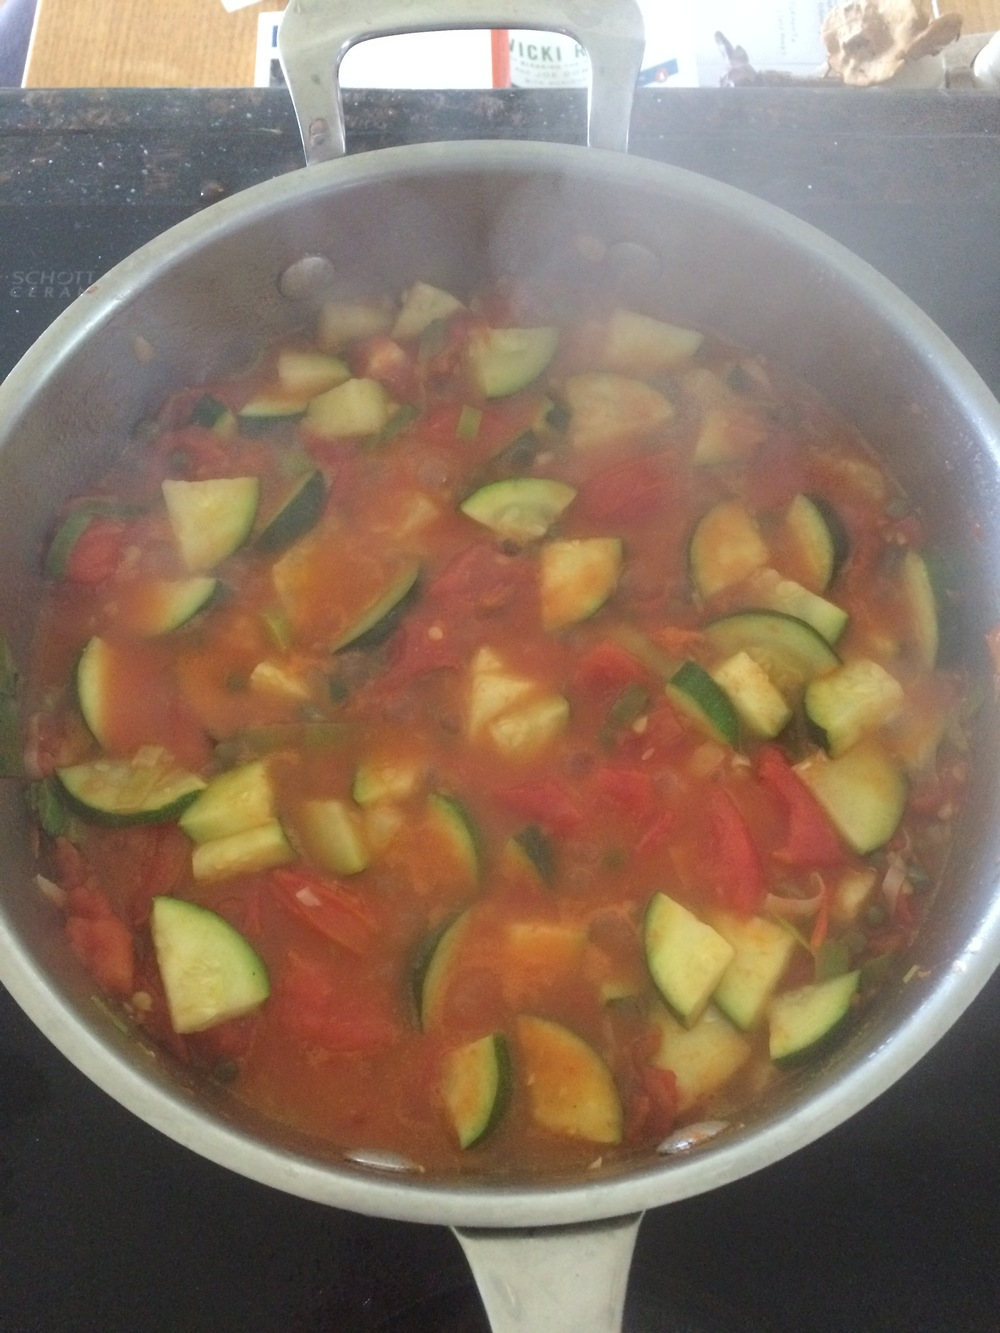 Fresh tomatoes, garlic, and leek pasta sauce with zucchini. Topped with fresh basil.